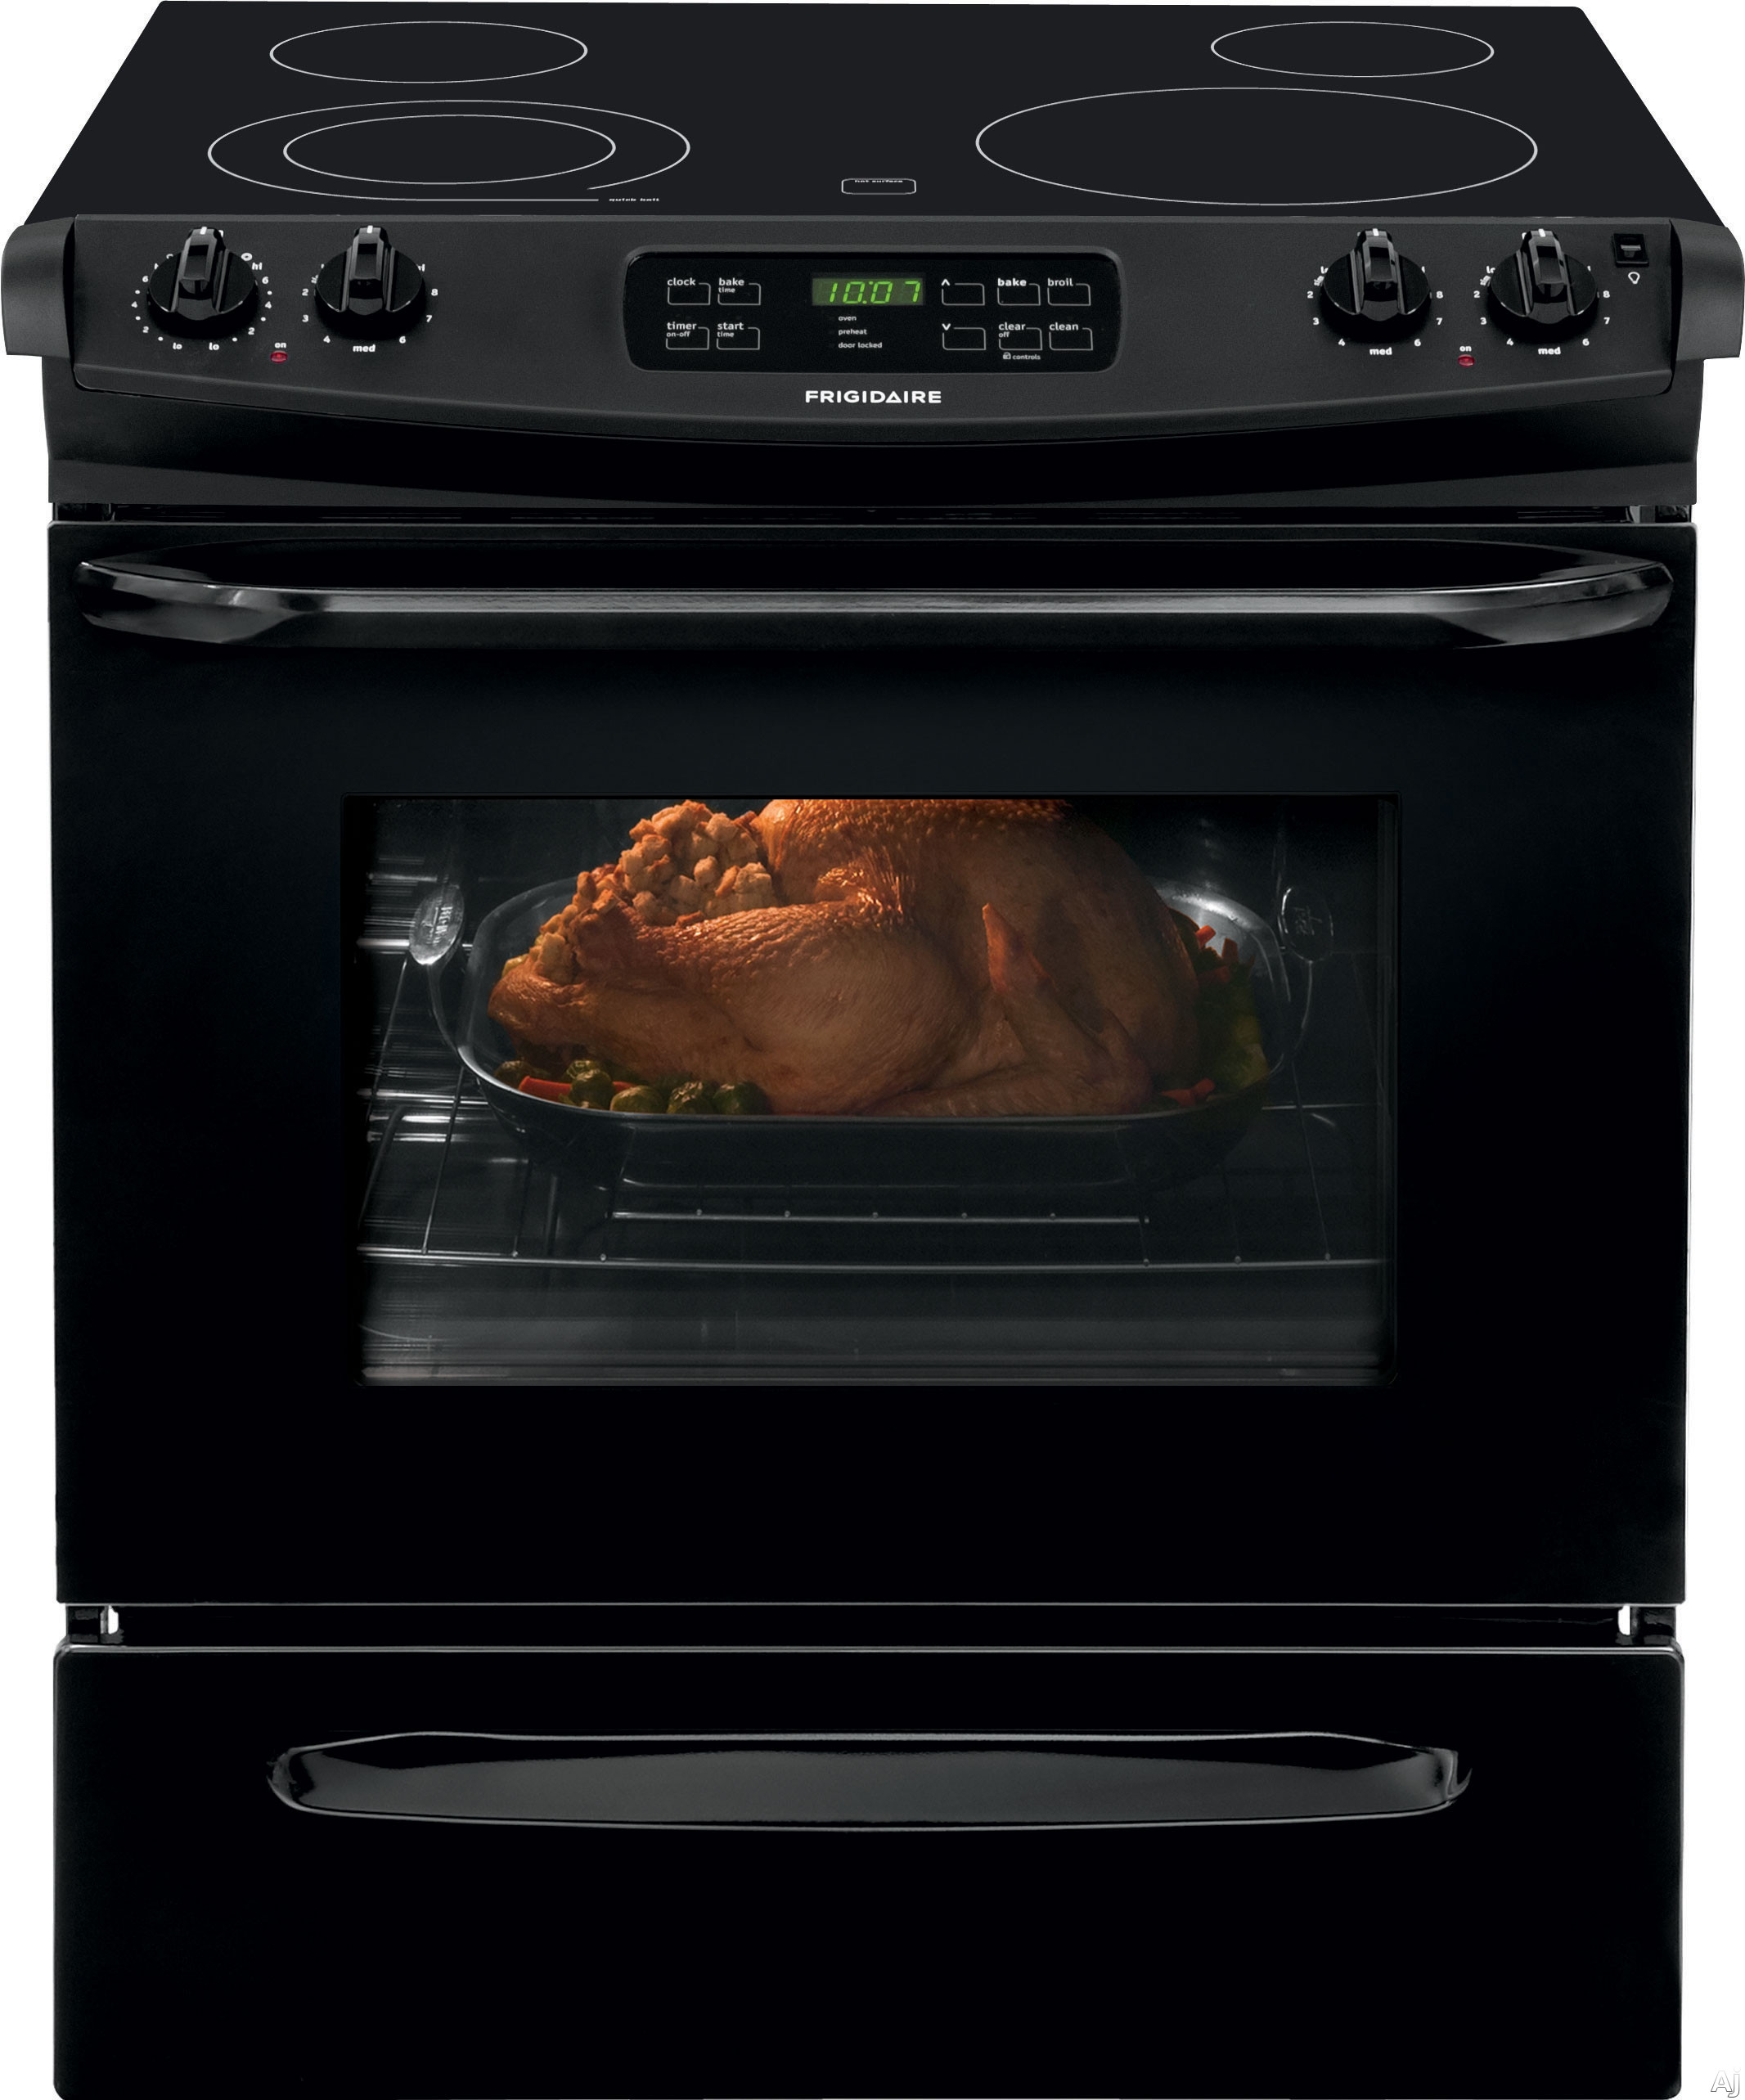 Frigidaire FFES3025PB 30 Inch Slide-In Electric Range with SpaceWise® Expandable Elements, Store-More™ Storage Drawer, Even Baking Technology, Self-Clean, Extra Large Element, ADA Compliant a